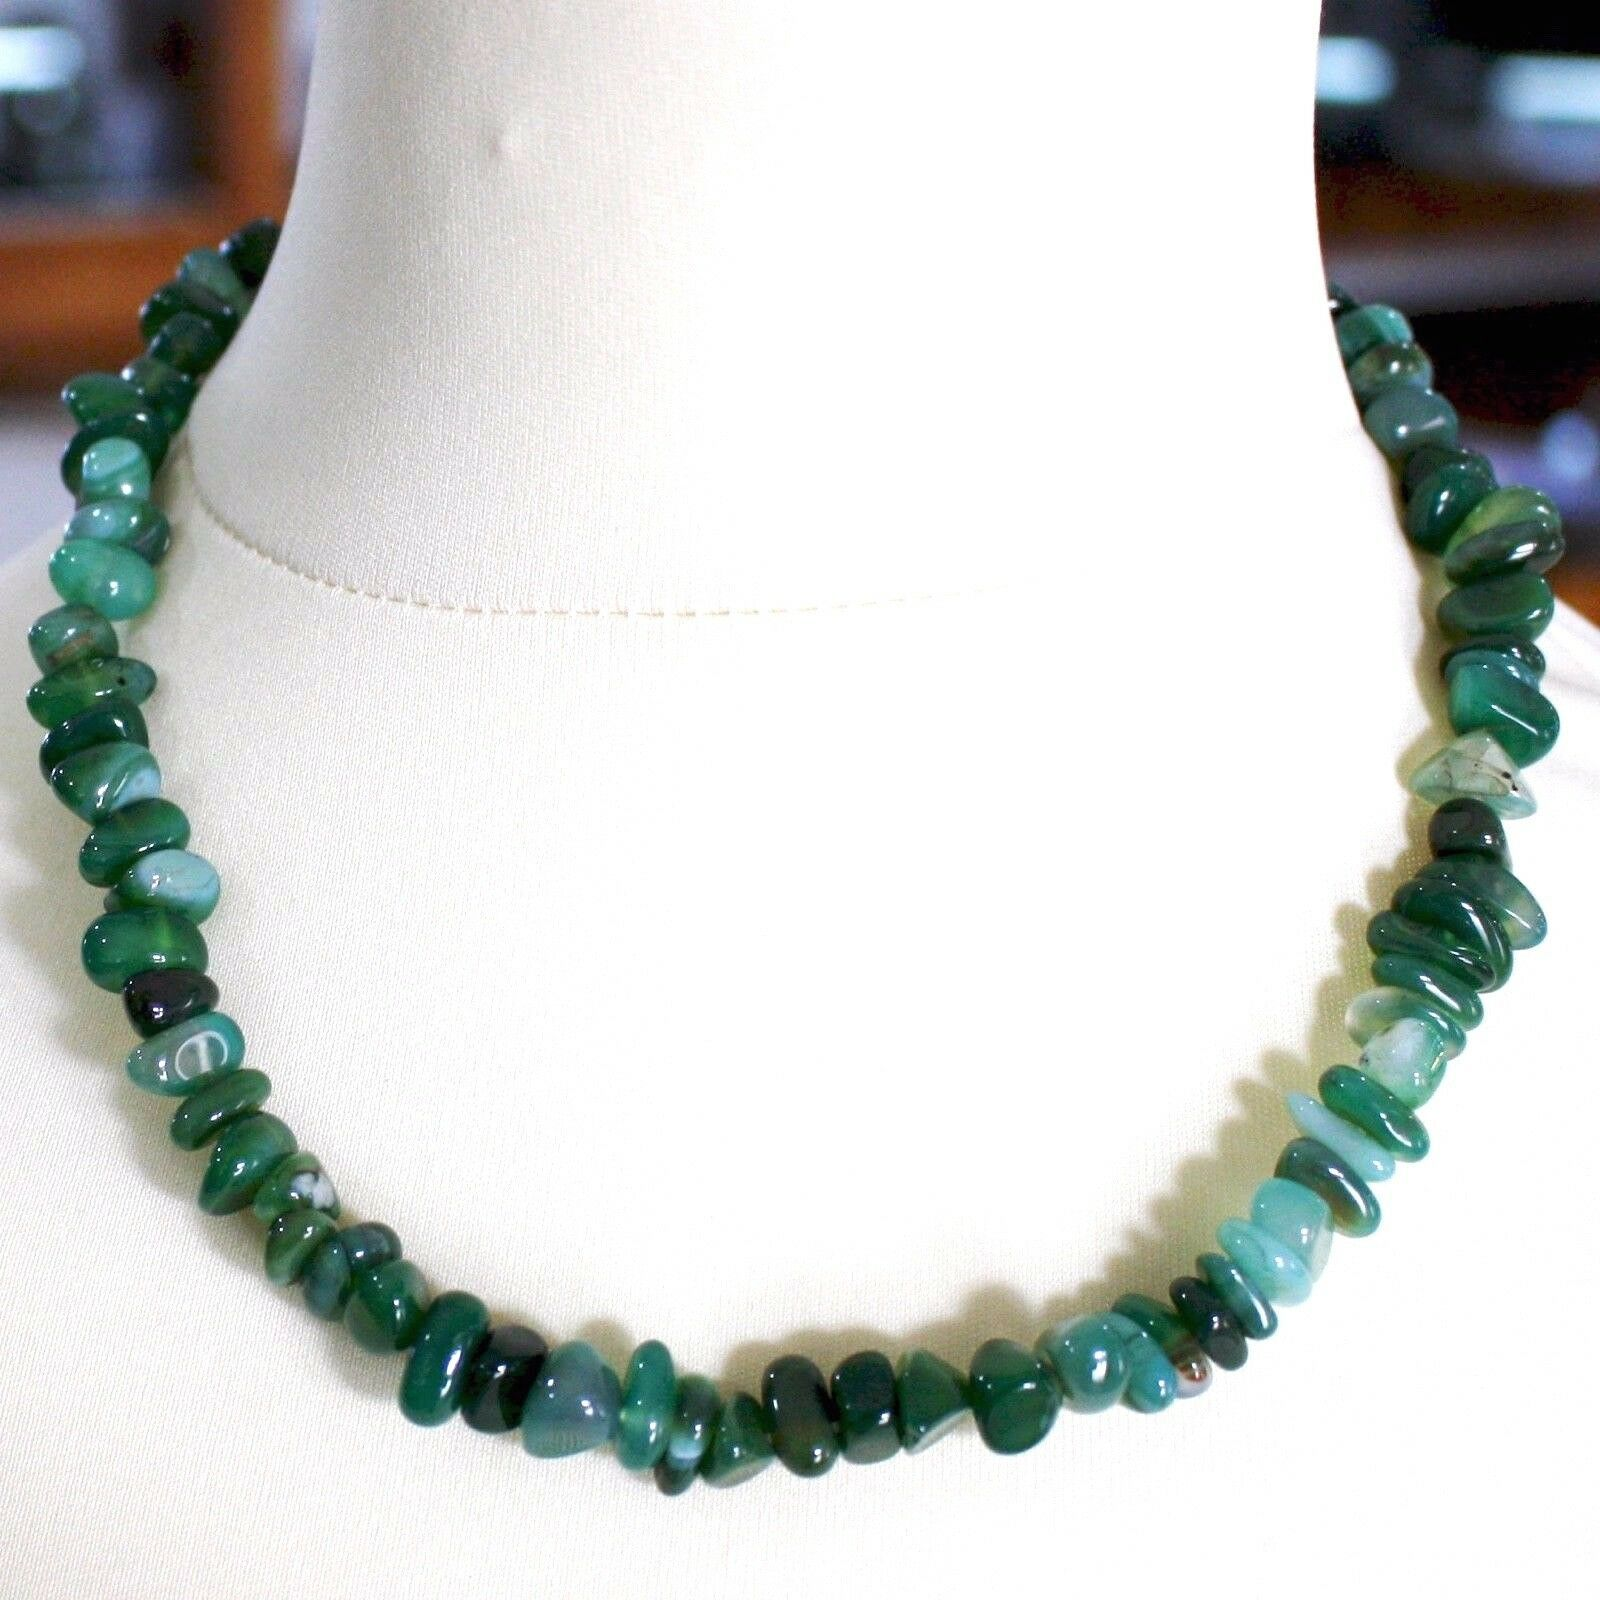 Silver Necklace 925 with Agate Green Banded, 50 or 75 cm Length